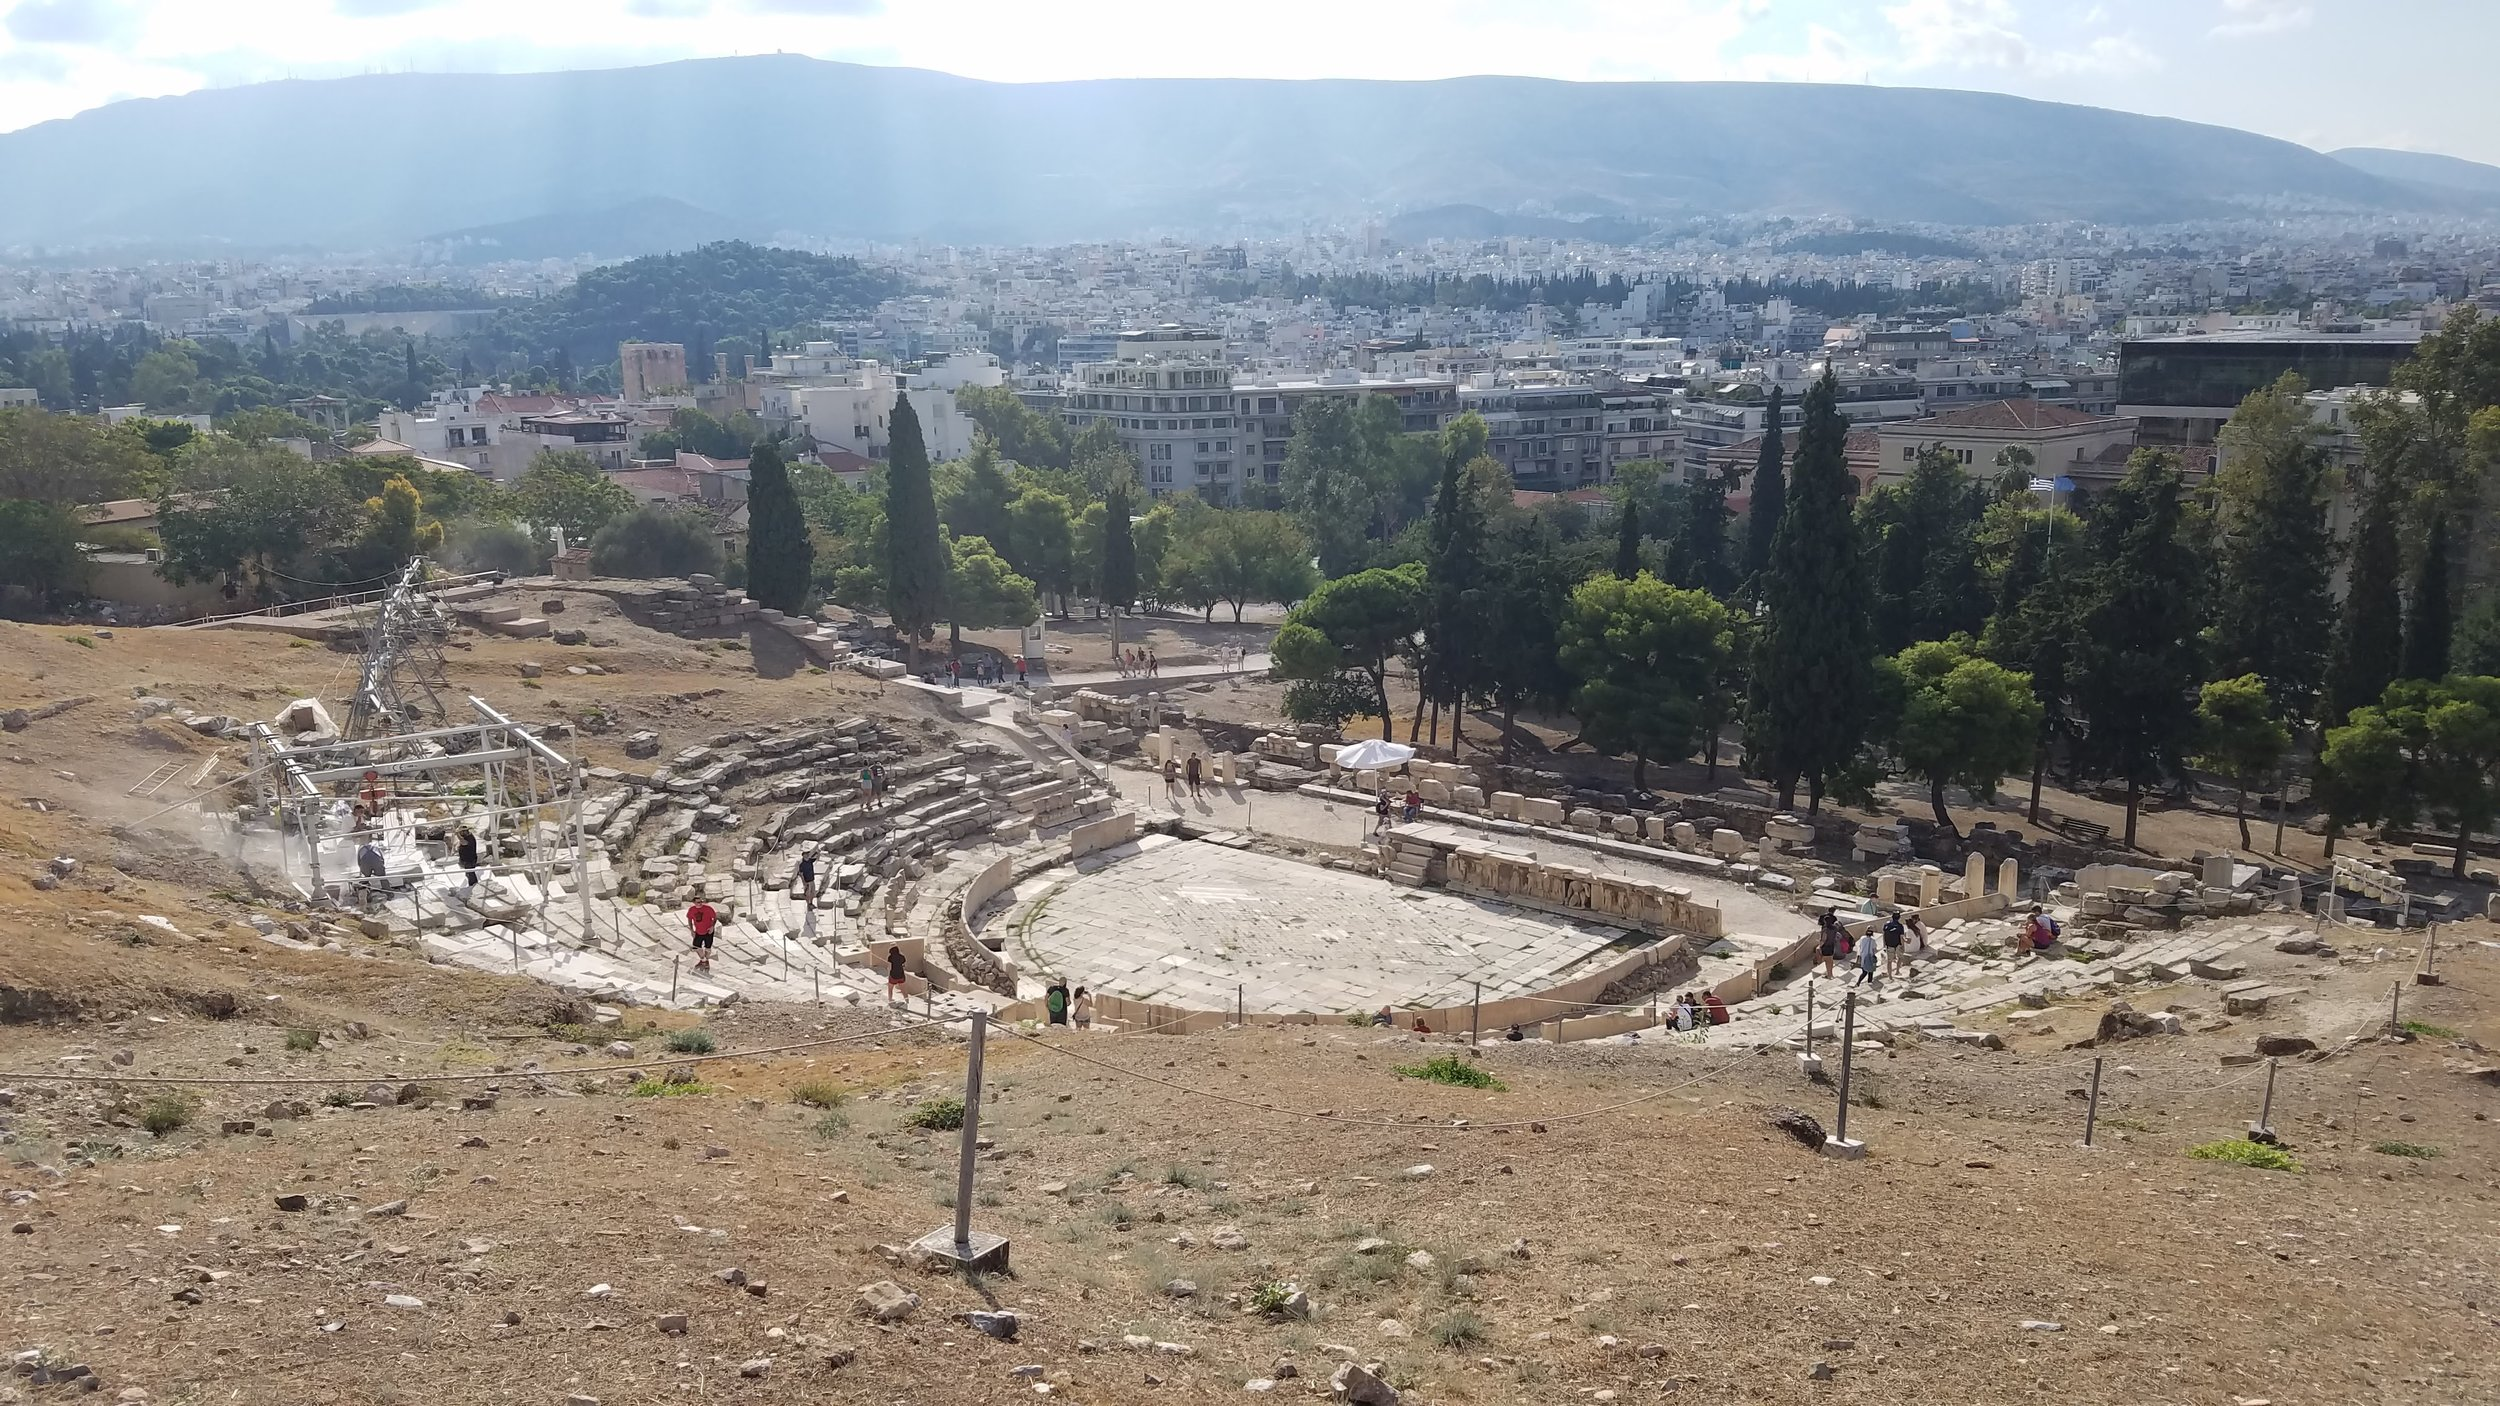 The Theatre of Dionysus still looms on the hill overlooking much of modern Athens.